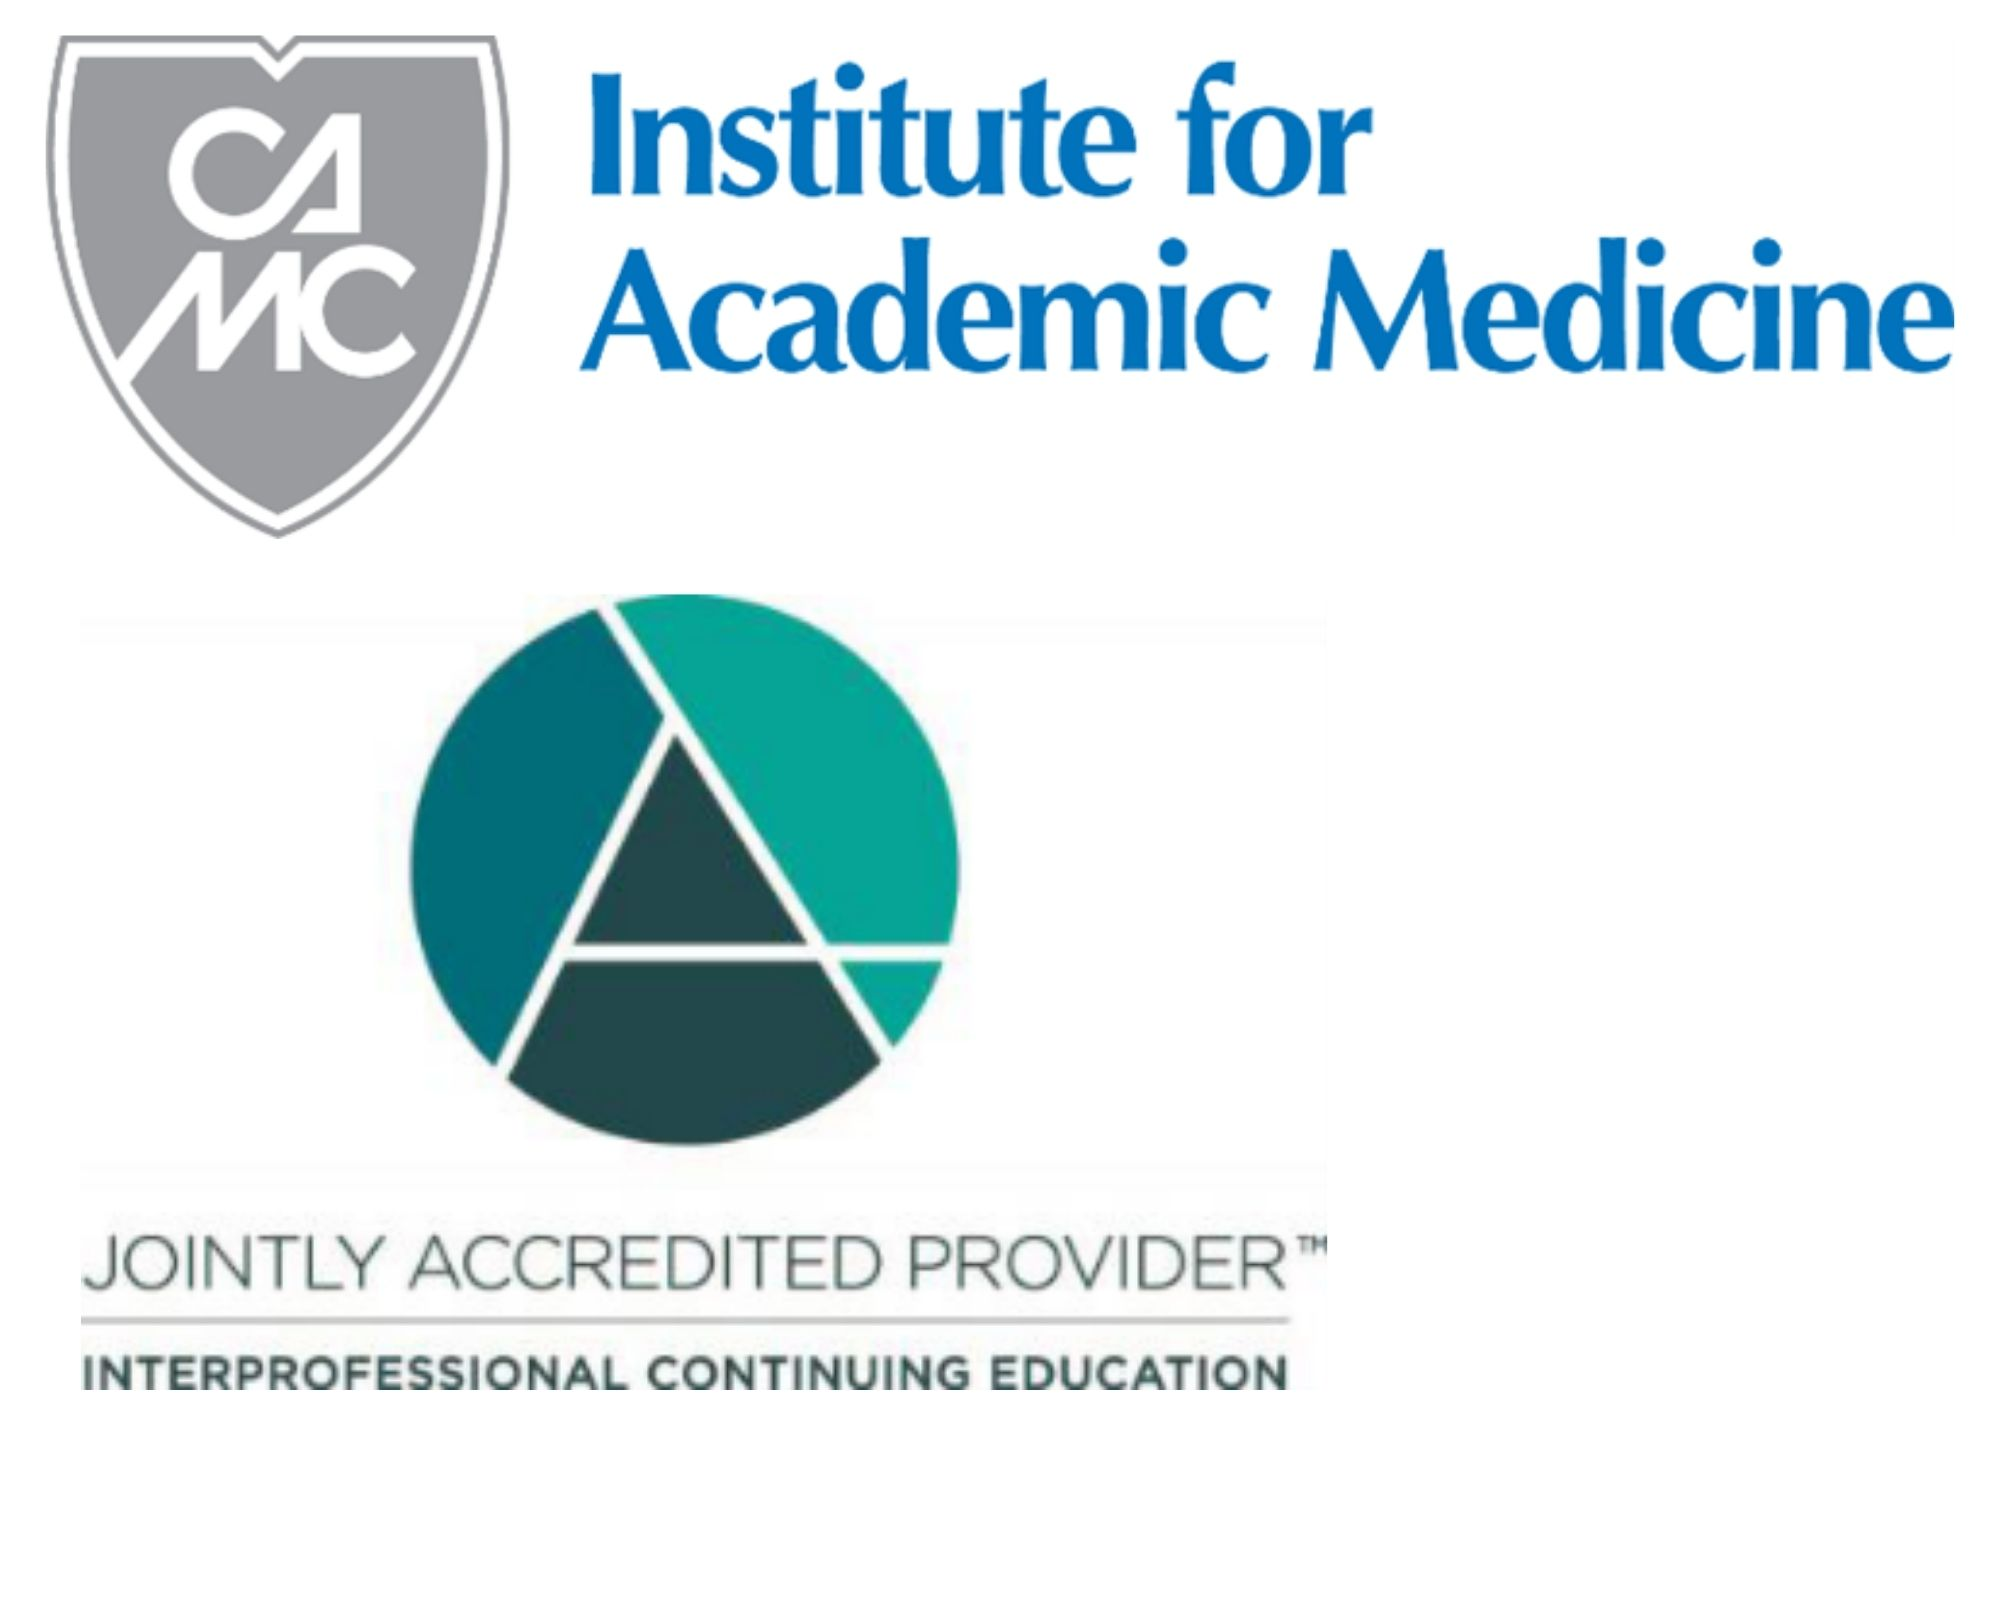 CAMC Health Education Research Institute; Jointly Accredited Provider